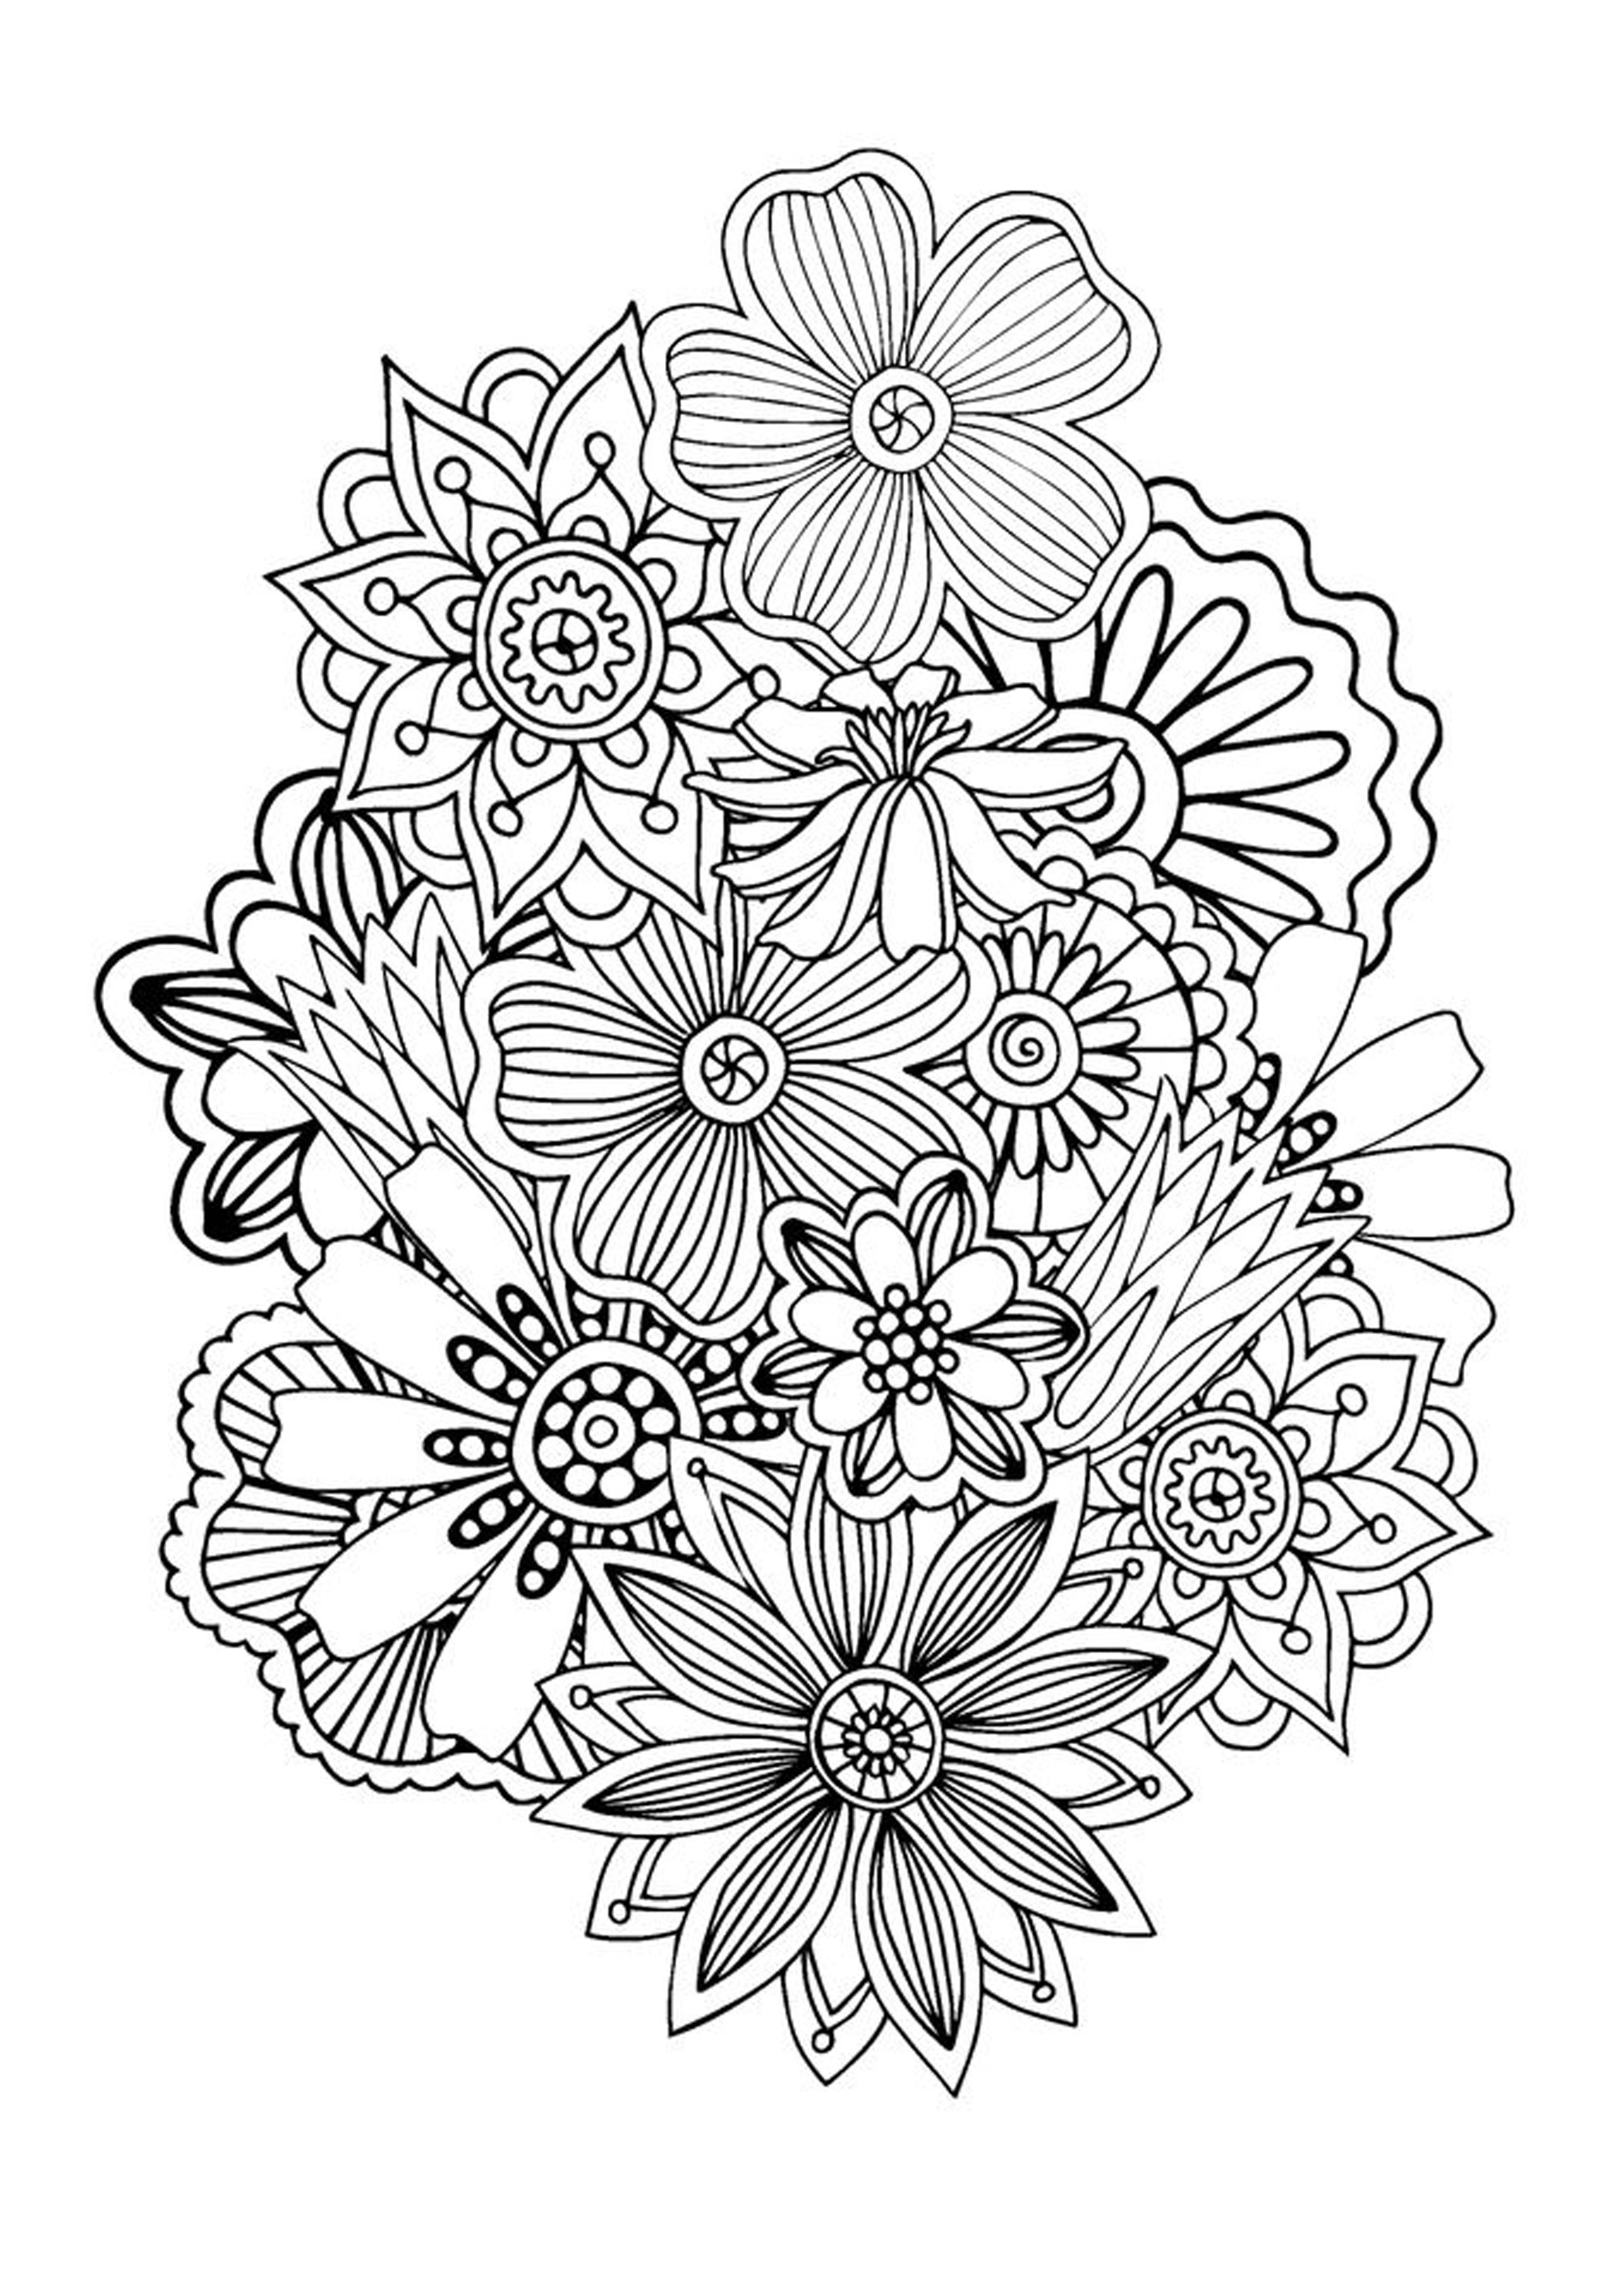 designs for coloring coloring to calm volume two patterns for designs coloring